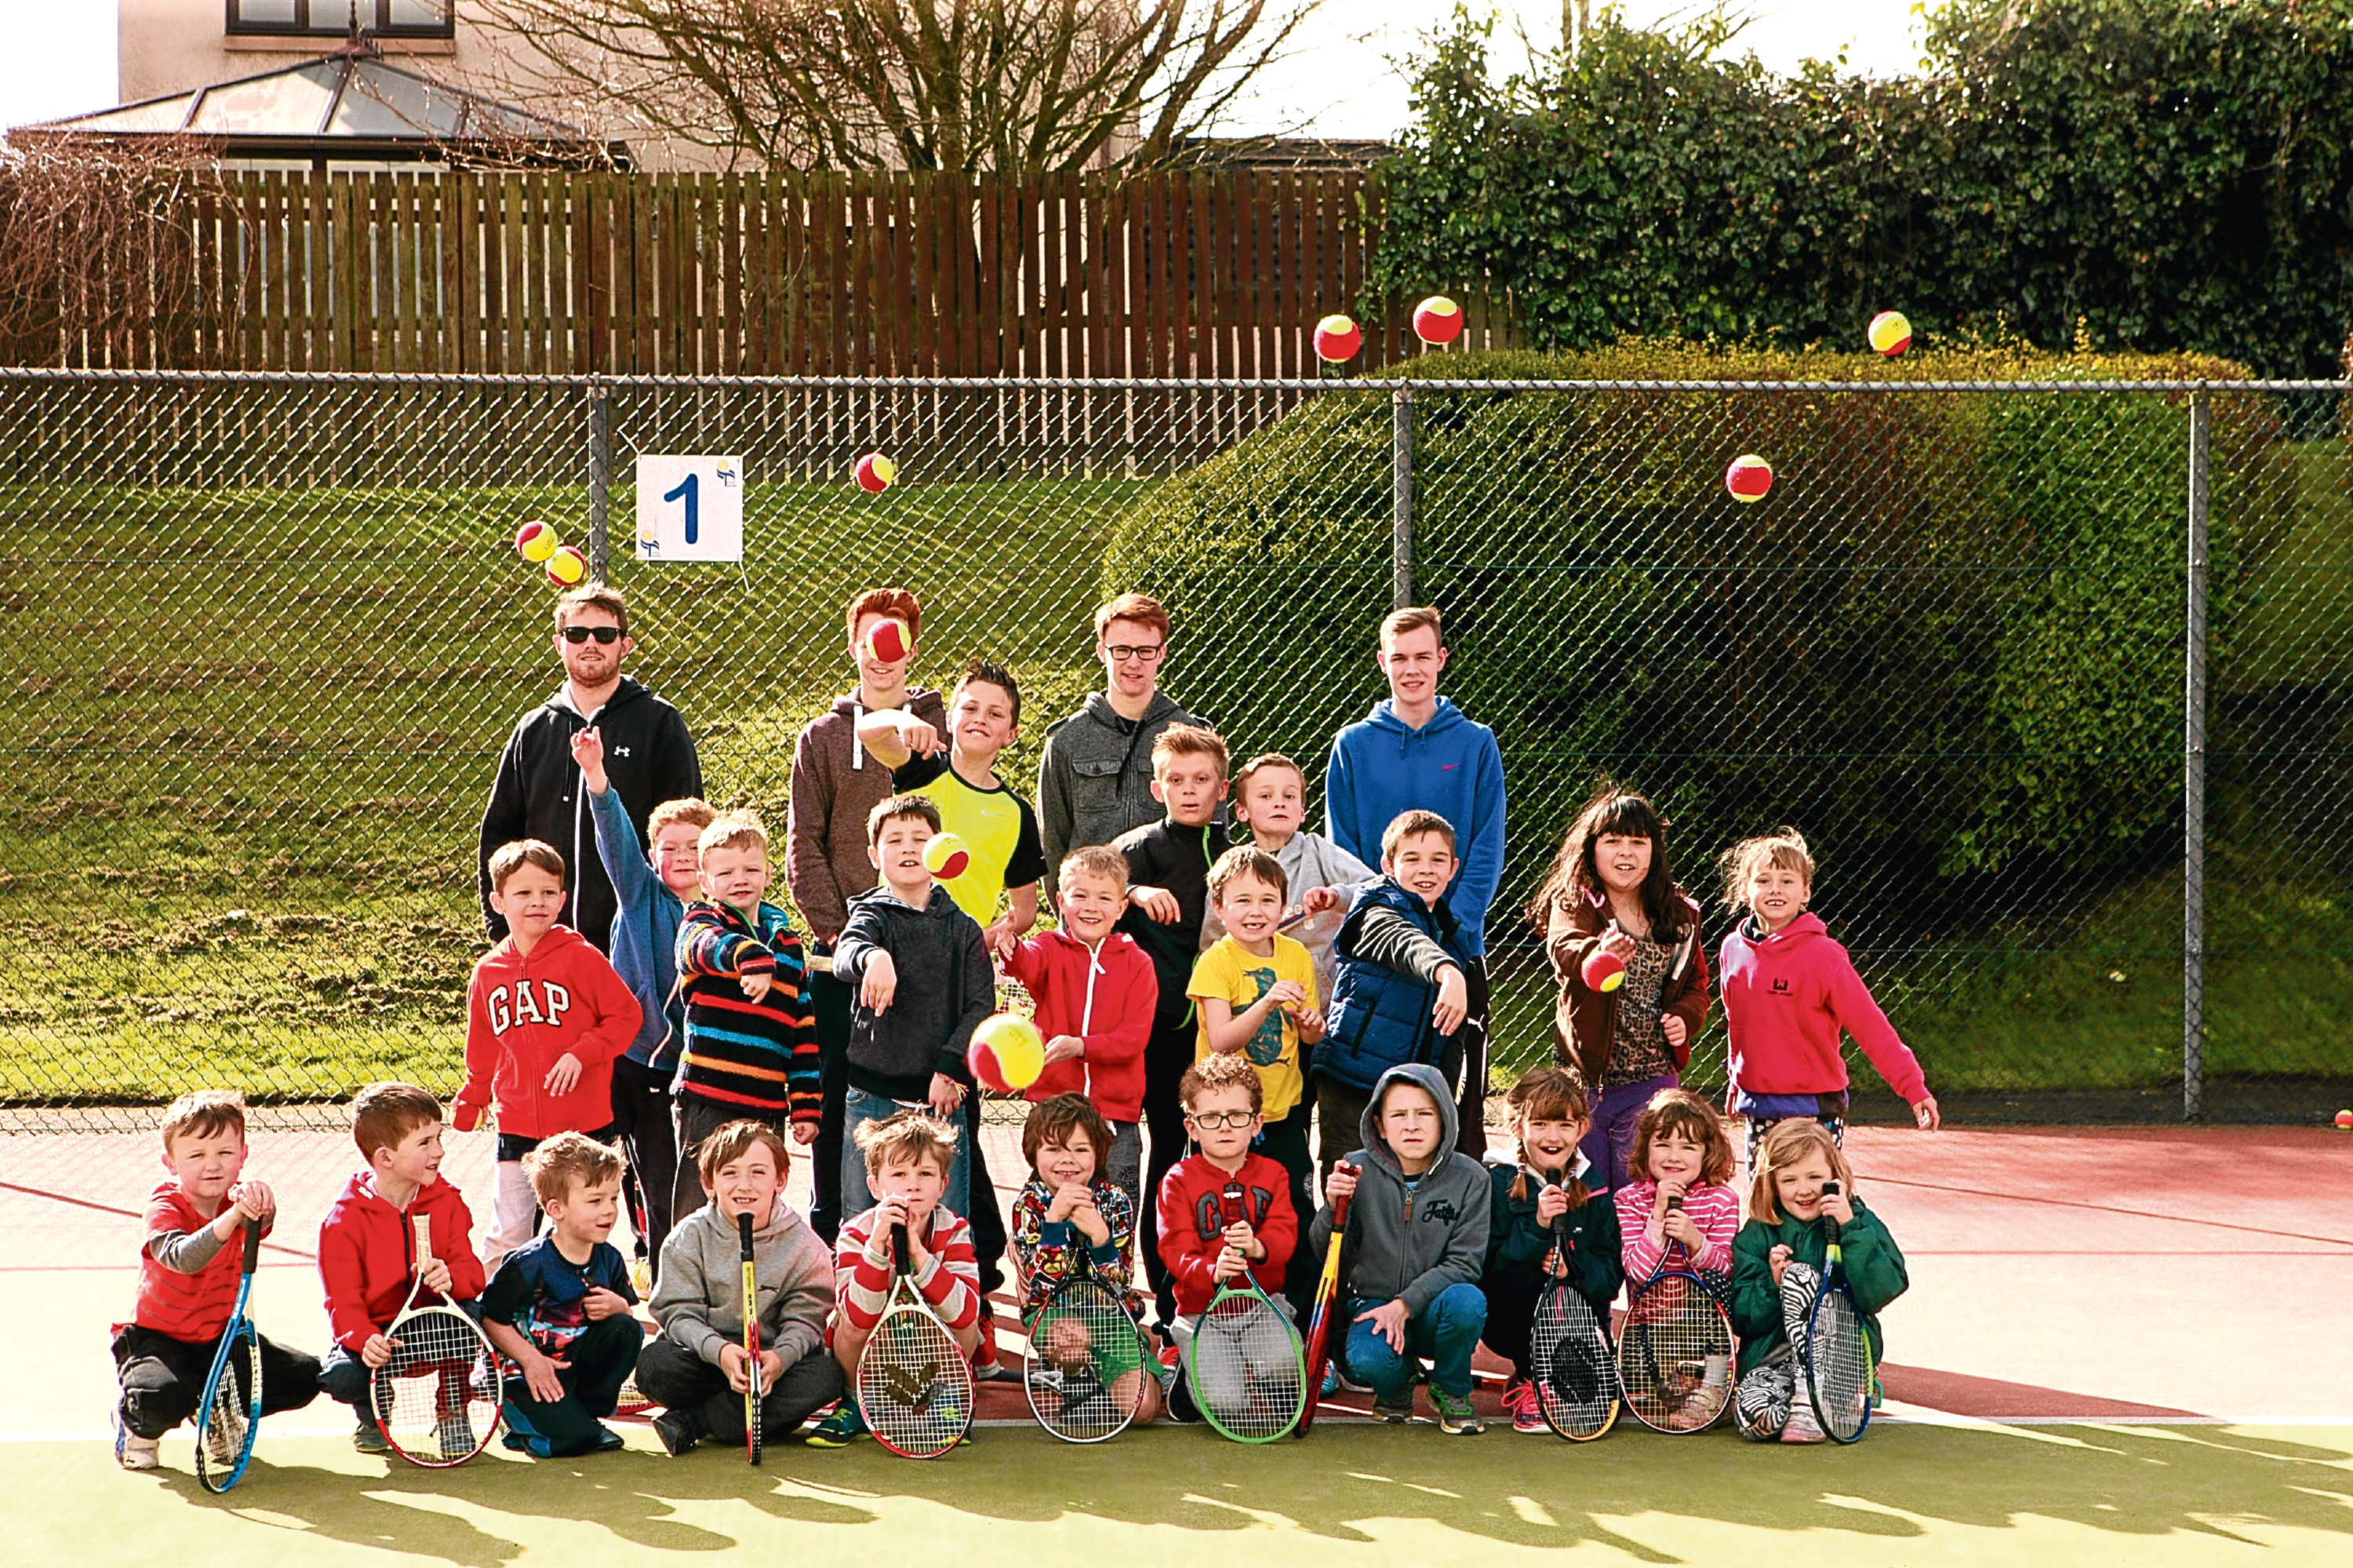 Youngsters at Broughty Ferry Tennis Club earlier this year